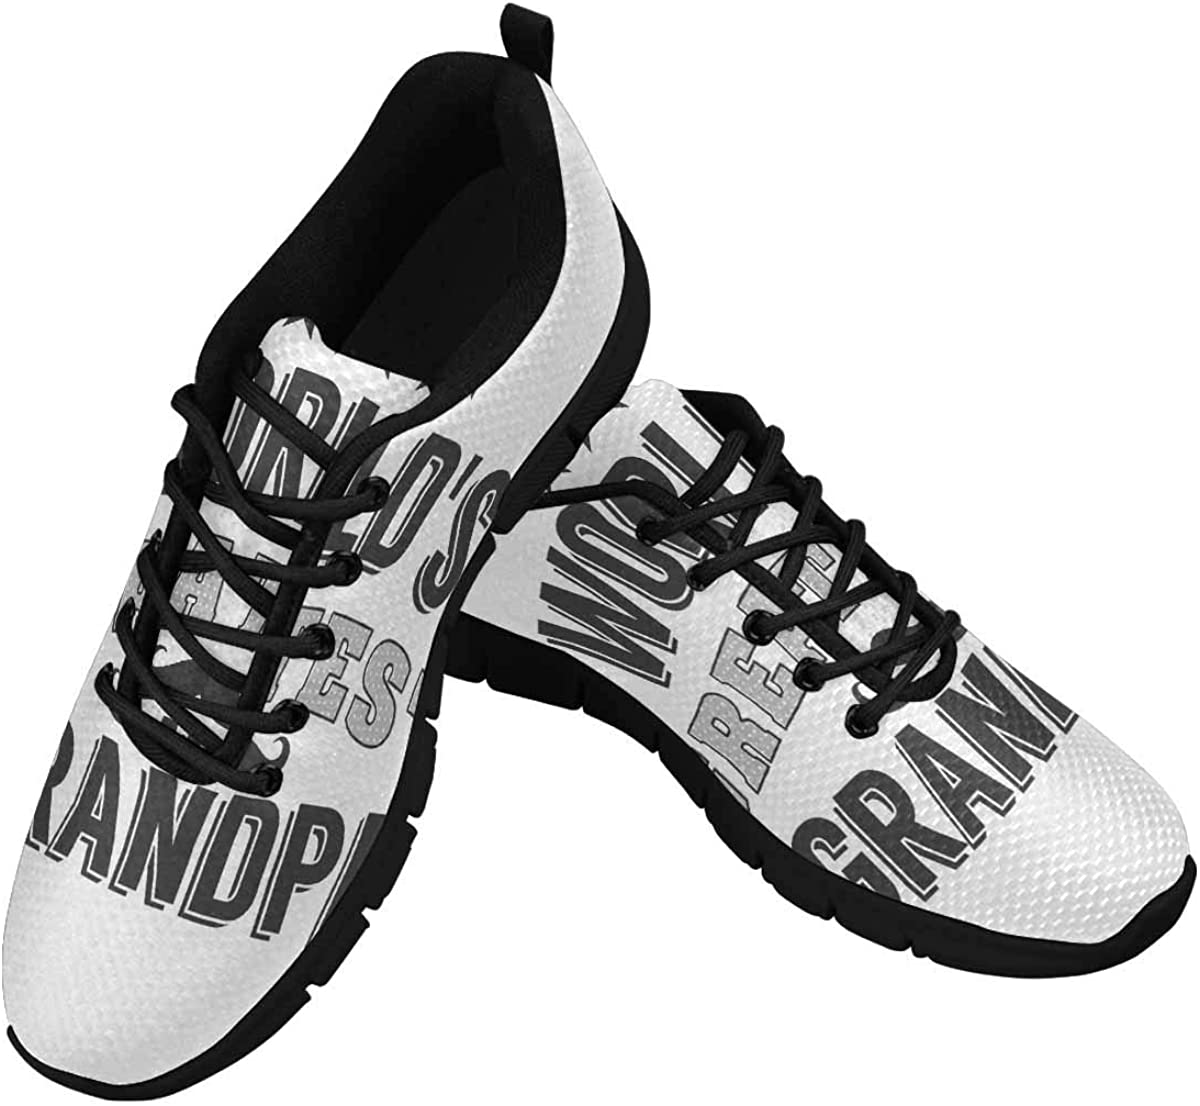 Max 50% OFF InterestPrint World's Greatest Grandpa At the price of surprise Lig Shoes Walking Women's